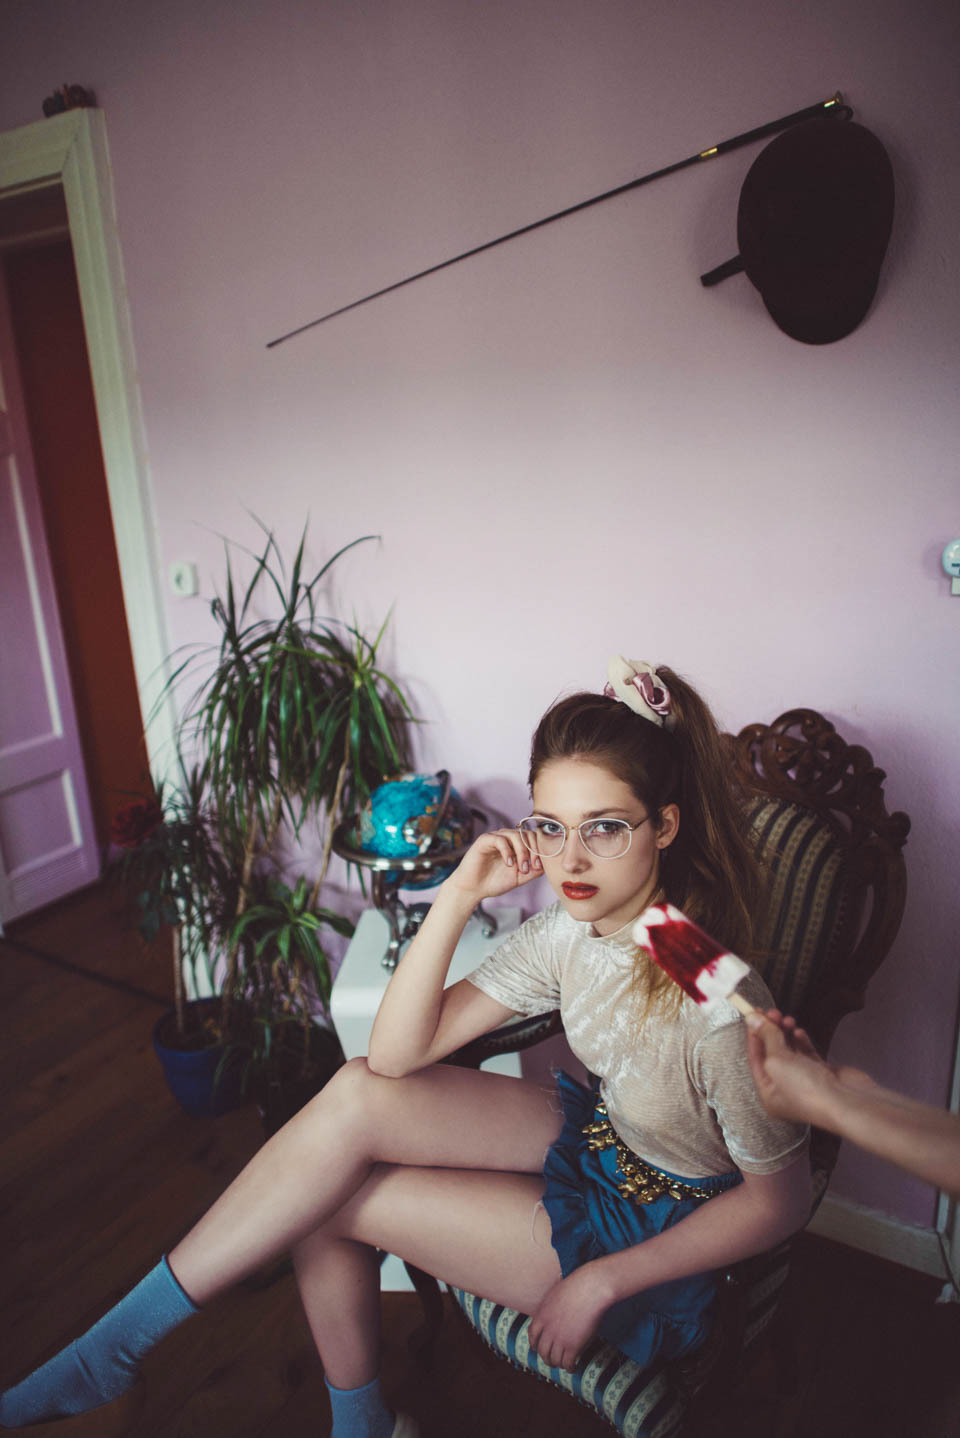 fashion editorial for cake magazine shot in cologne germany by fashion photographer erika astrid_35.jpg